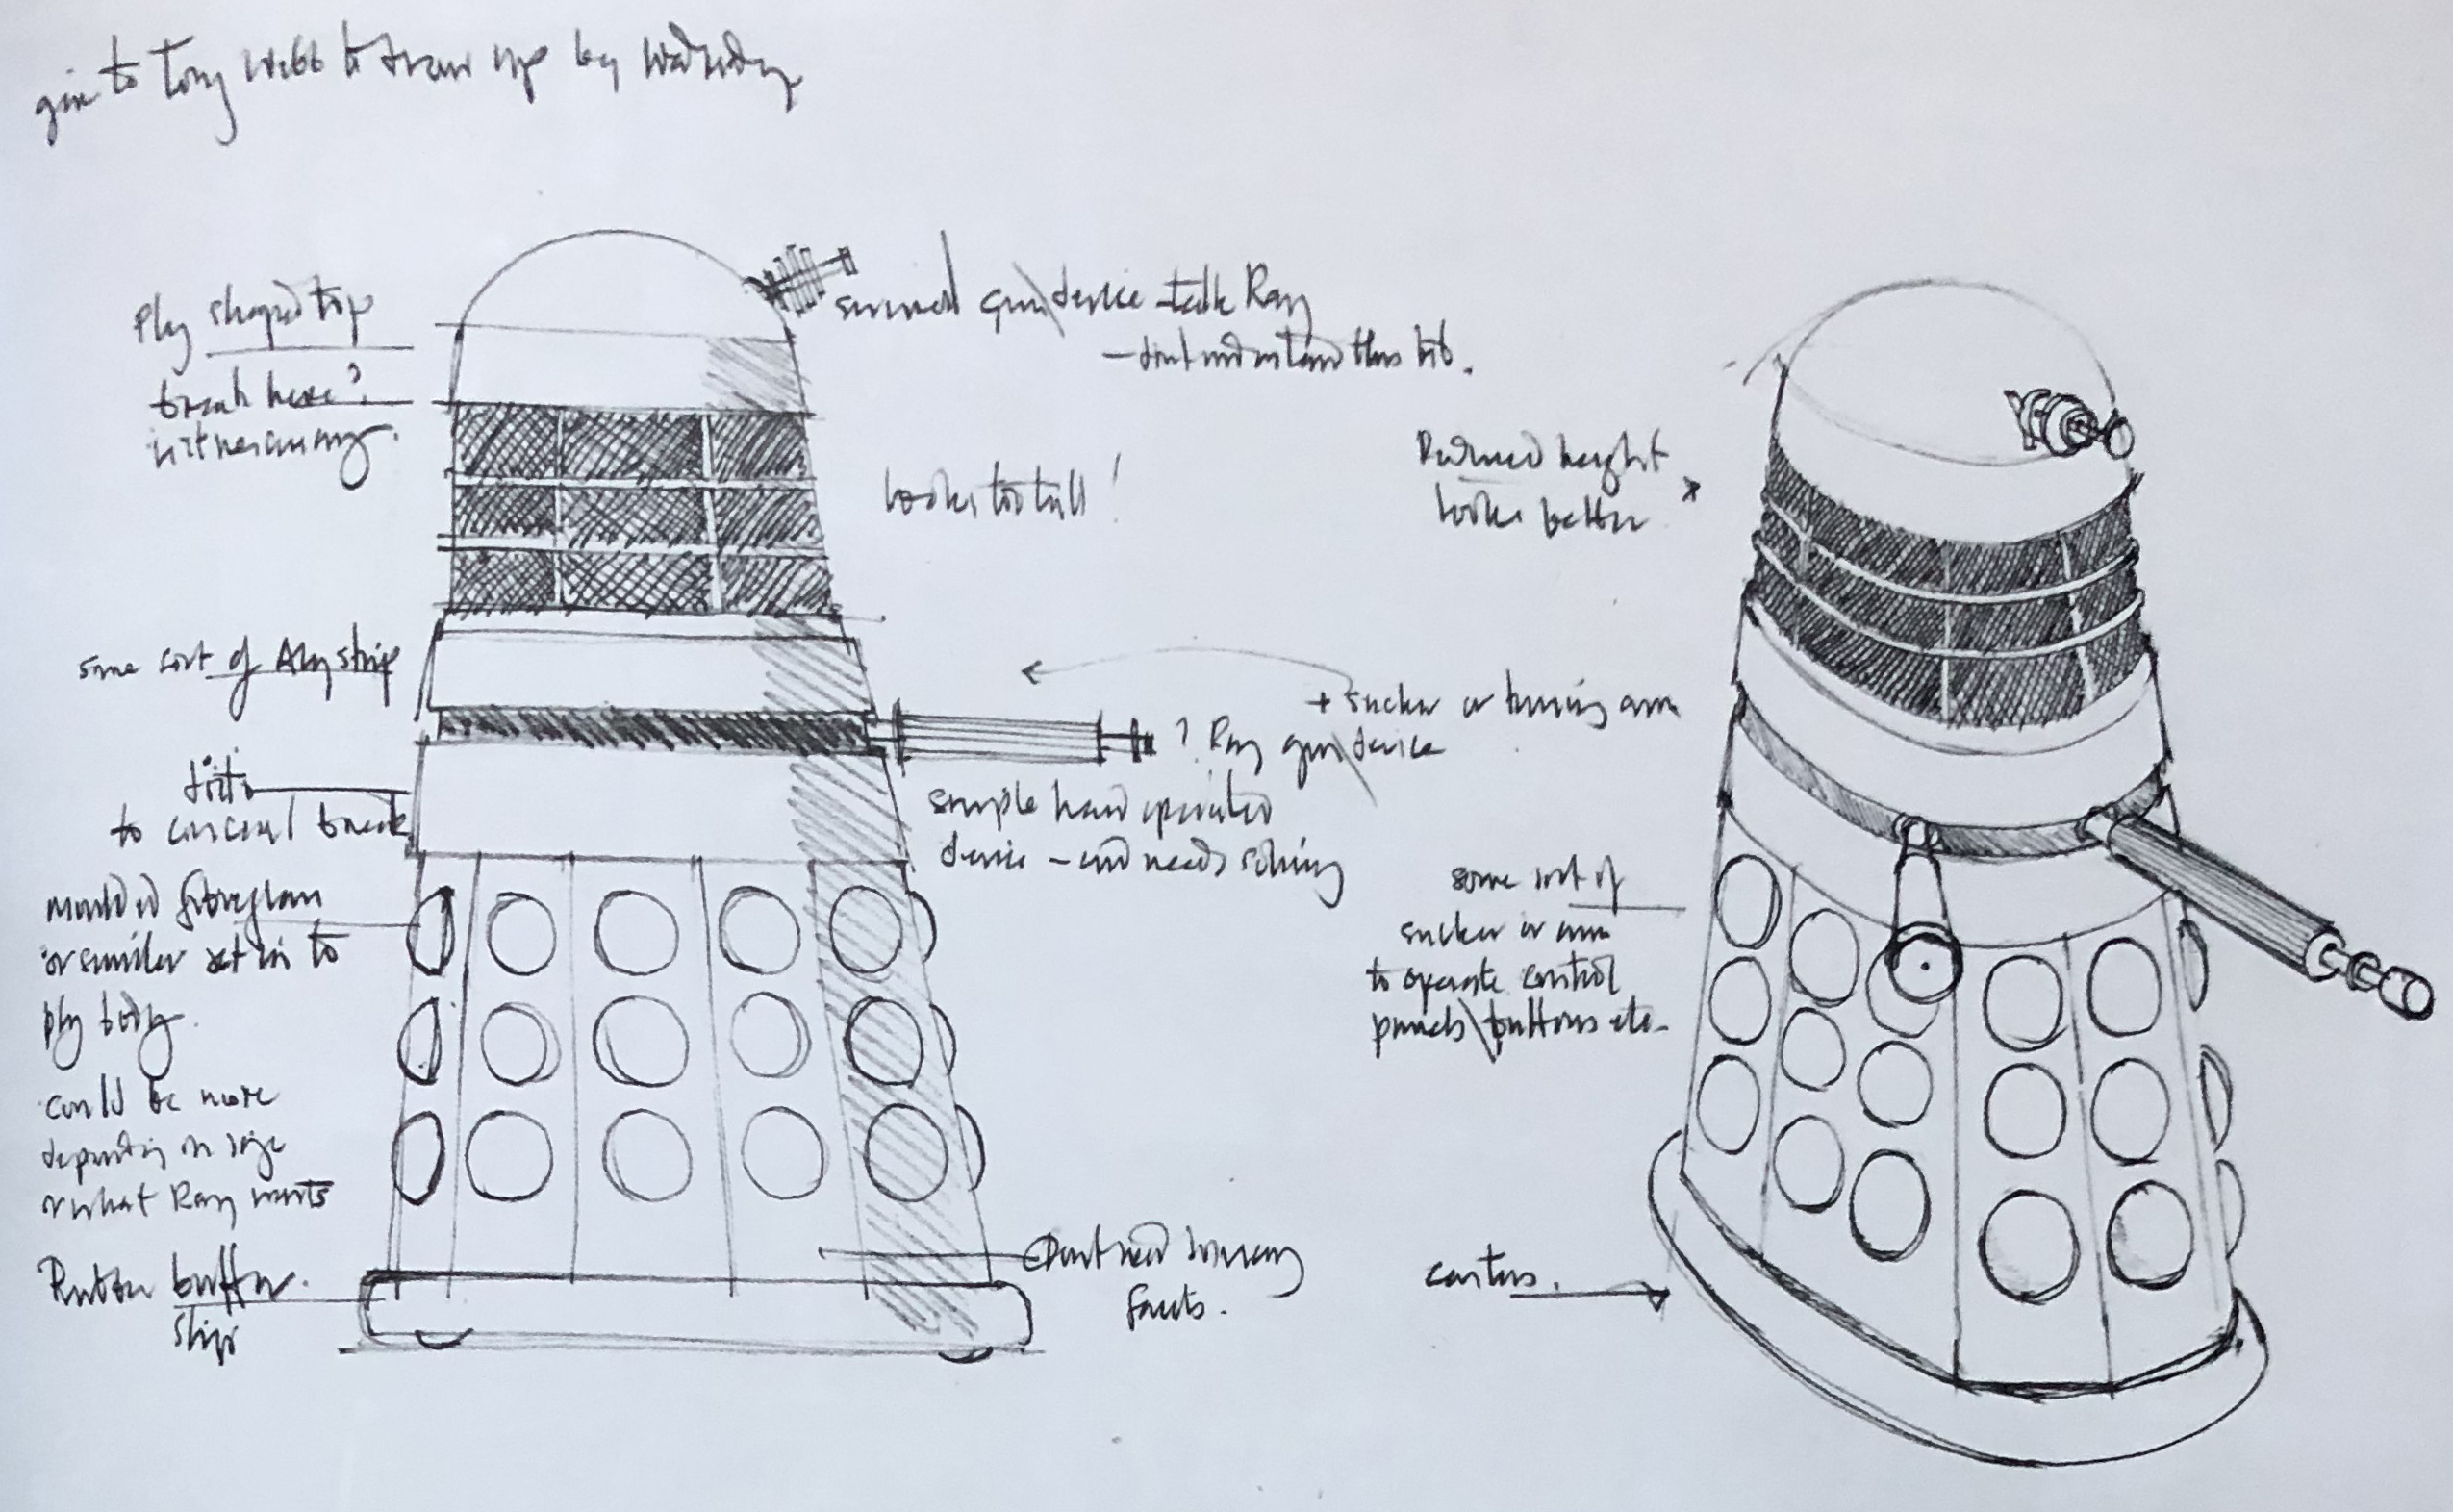 One of Davies' final sketches is close to the final form